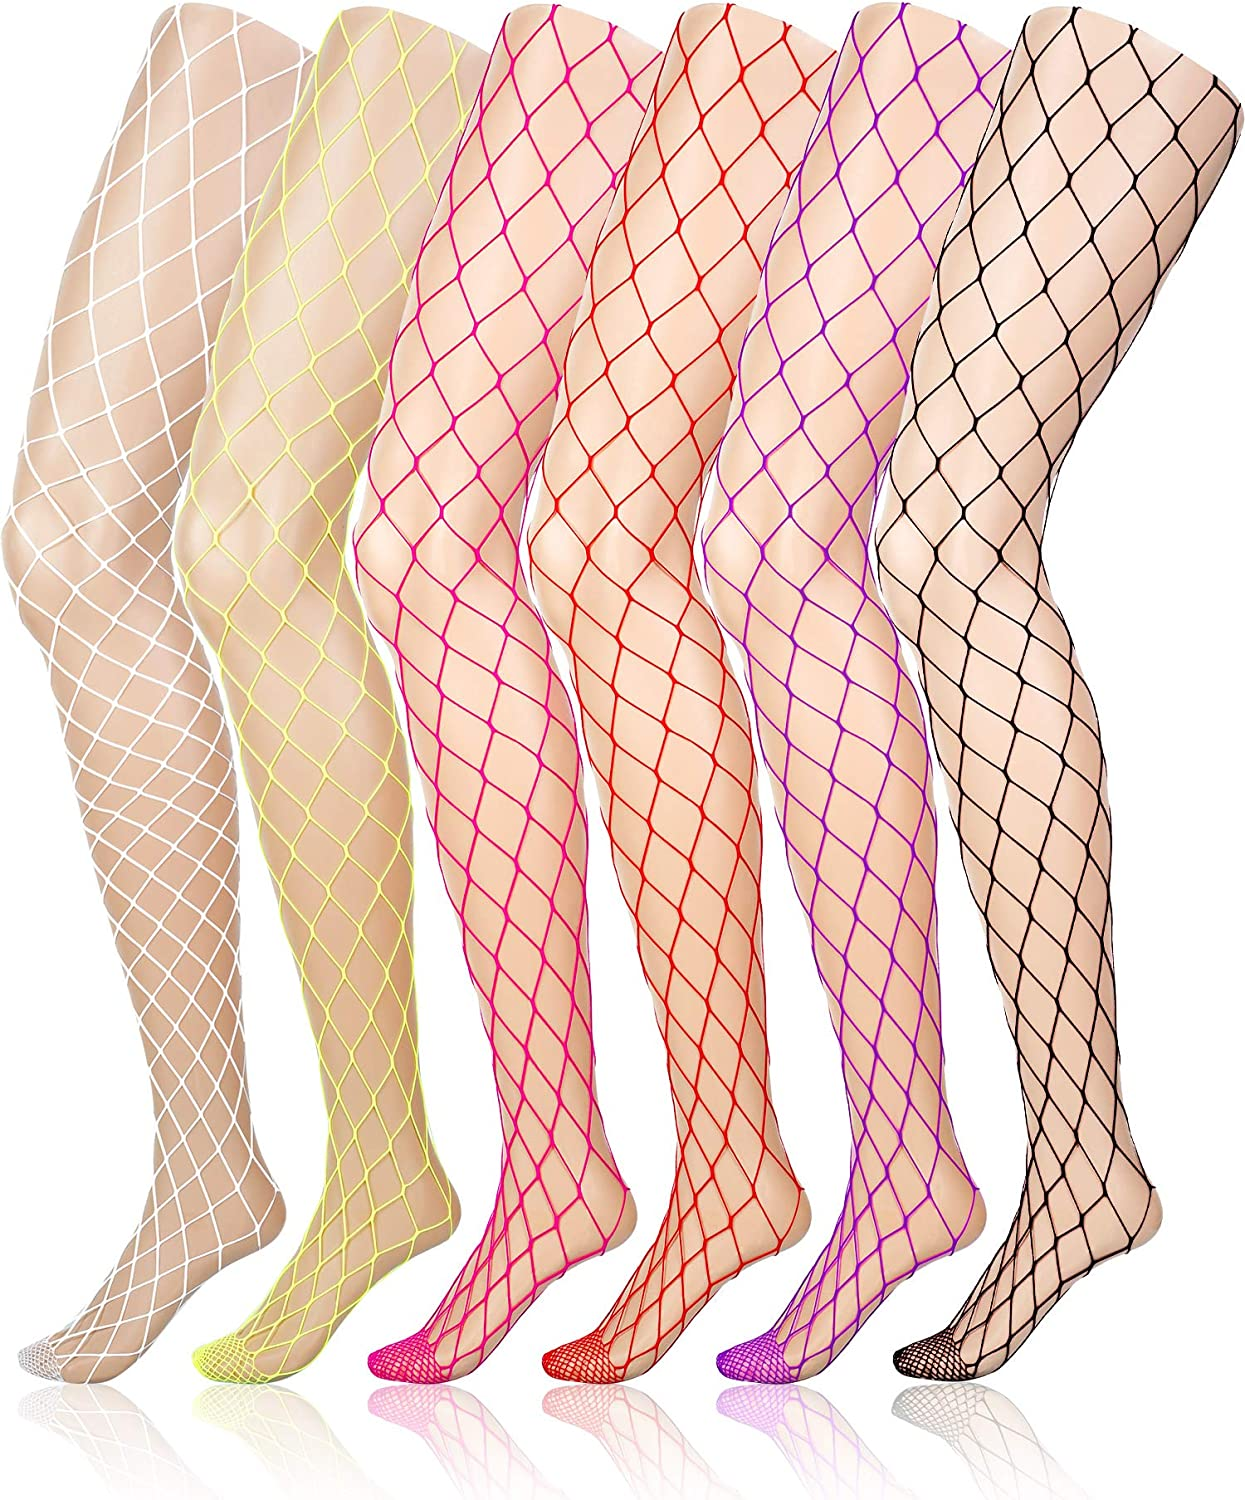 Nylon Tights in 4 different Colors Rave Wear Costume Accessory fnt